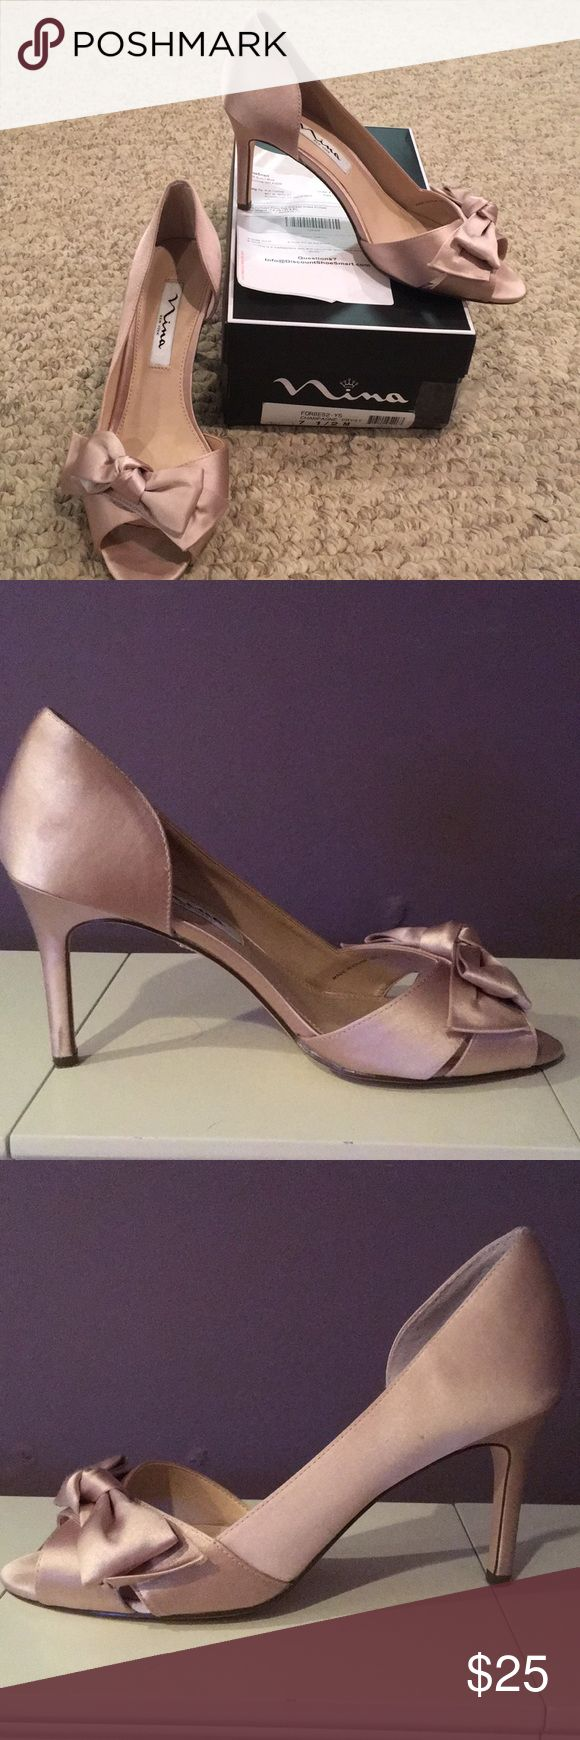 Nina Forbes 2 Champagne Pump Wore once for a wedding for about 3 hours (then put my flip flops on). Size 7.5. Champagne color. Like new condition. $85 at Nordstrom right now.   https://m.shop.nordstrom.com/s/nina-forbes-ii-peep-toe-pump-women/4785287?contextualcategoryid=2375500&origin=keywordsearch&keyword=Nina+Forbes Nina Shoes Heels